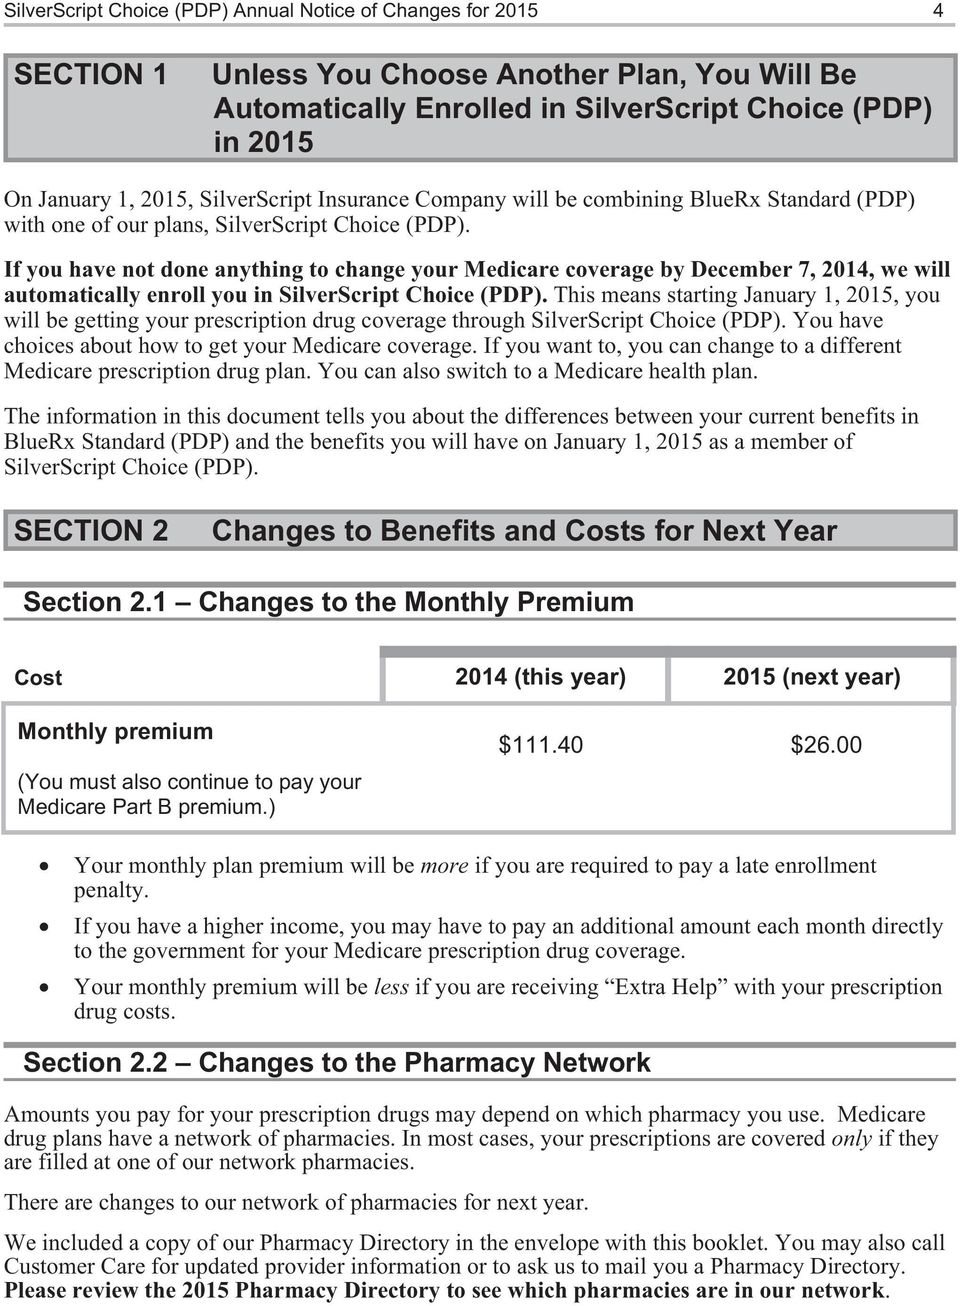 If you have not done anything to change your Medicare coverage by December 7, 2014, we will automatically enroll you in SilverScript Choice (PDP).